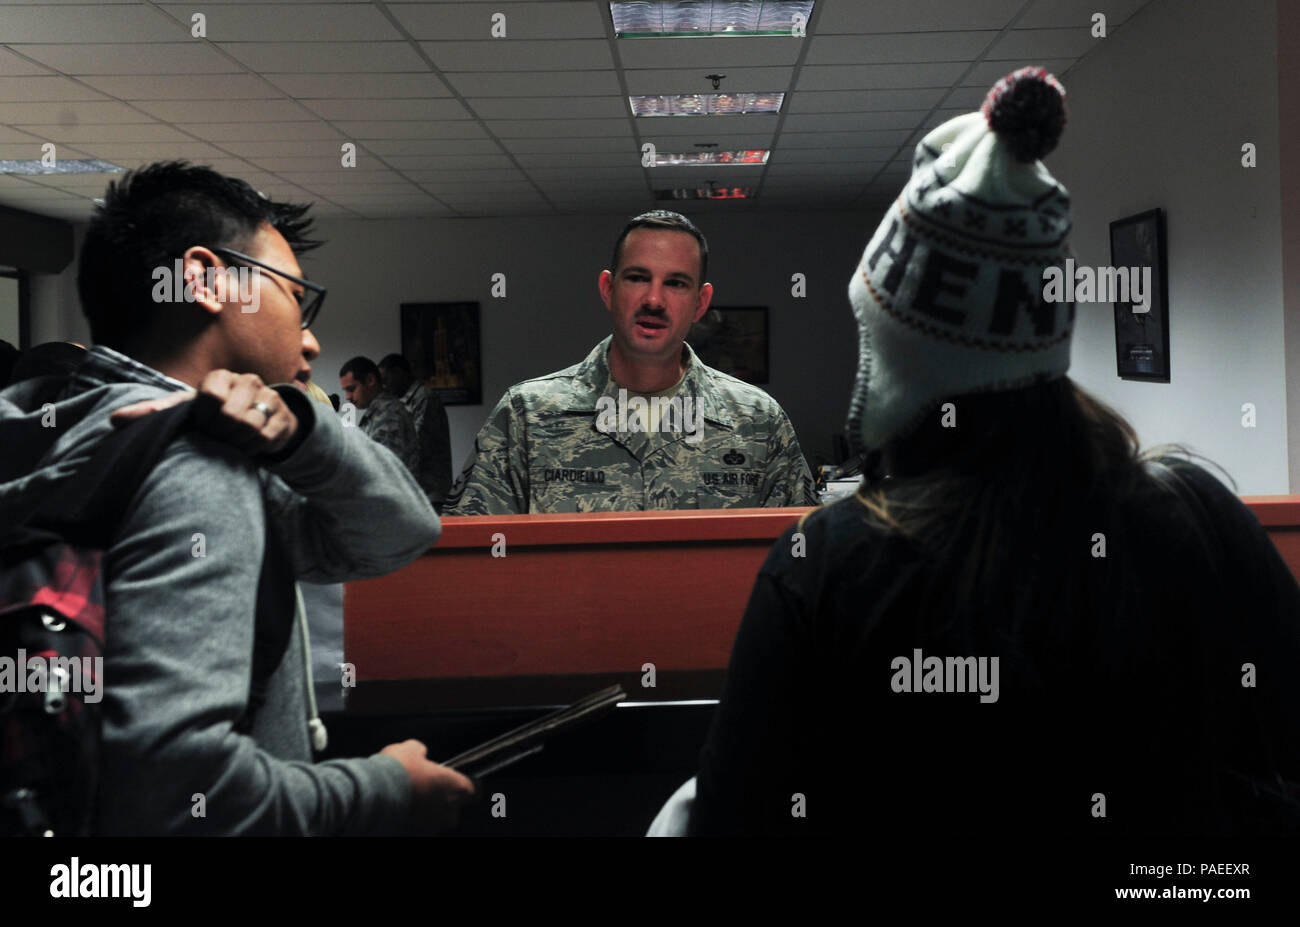 U.S. Air Force Master Sgt. Marc Ciardiello, 39th Air Base Wing legal office superintendent, speaks with U.S. Air Force Staff Sgt. Bryant Guillermo, 39th Security Forces Squadron NCO in-charge of investigation, and his wife at the processing center during the Department of State ordered departure March 30, 2016 at Incirlik Air Base, Turkey. The directed departure was conducted in close coordination with the Department of State and the Government of Turkey to ensure the safe transition of U.S. citizens from Incirlik Air Base and elsewhere in Turkey. (U.S. Air Force photo by Staff Sgt. Eboni Ream - Stock Image